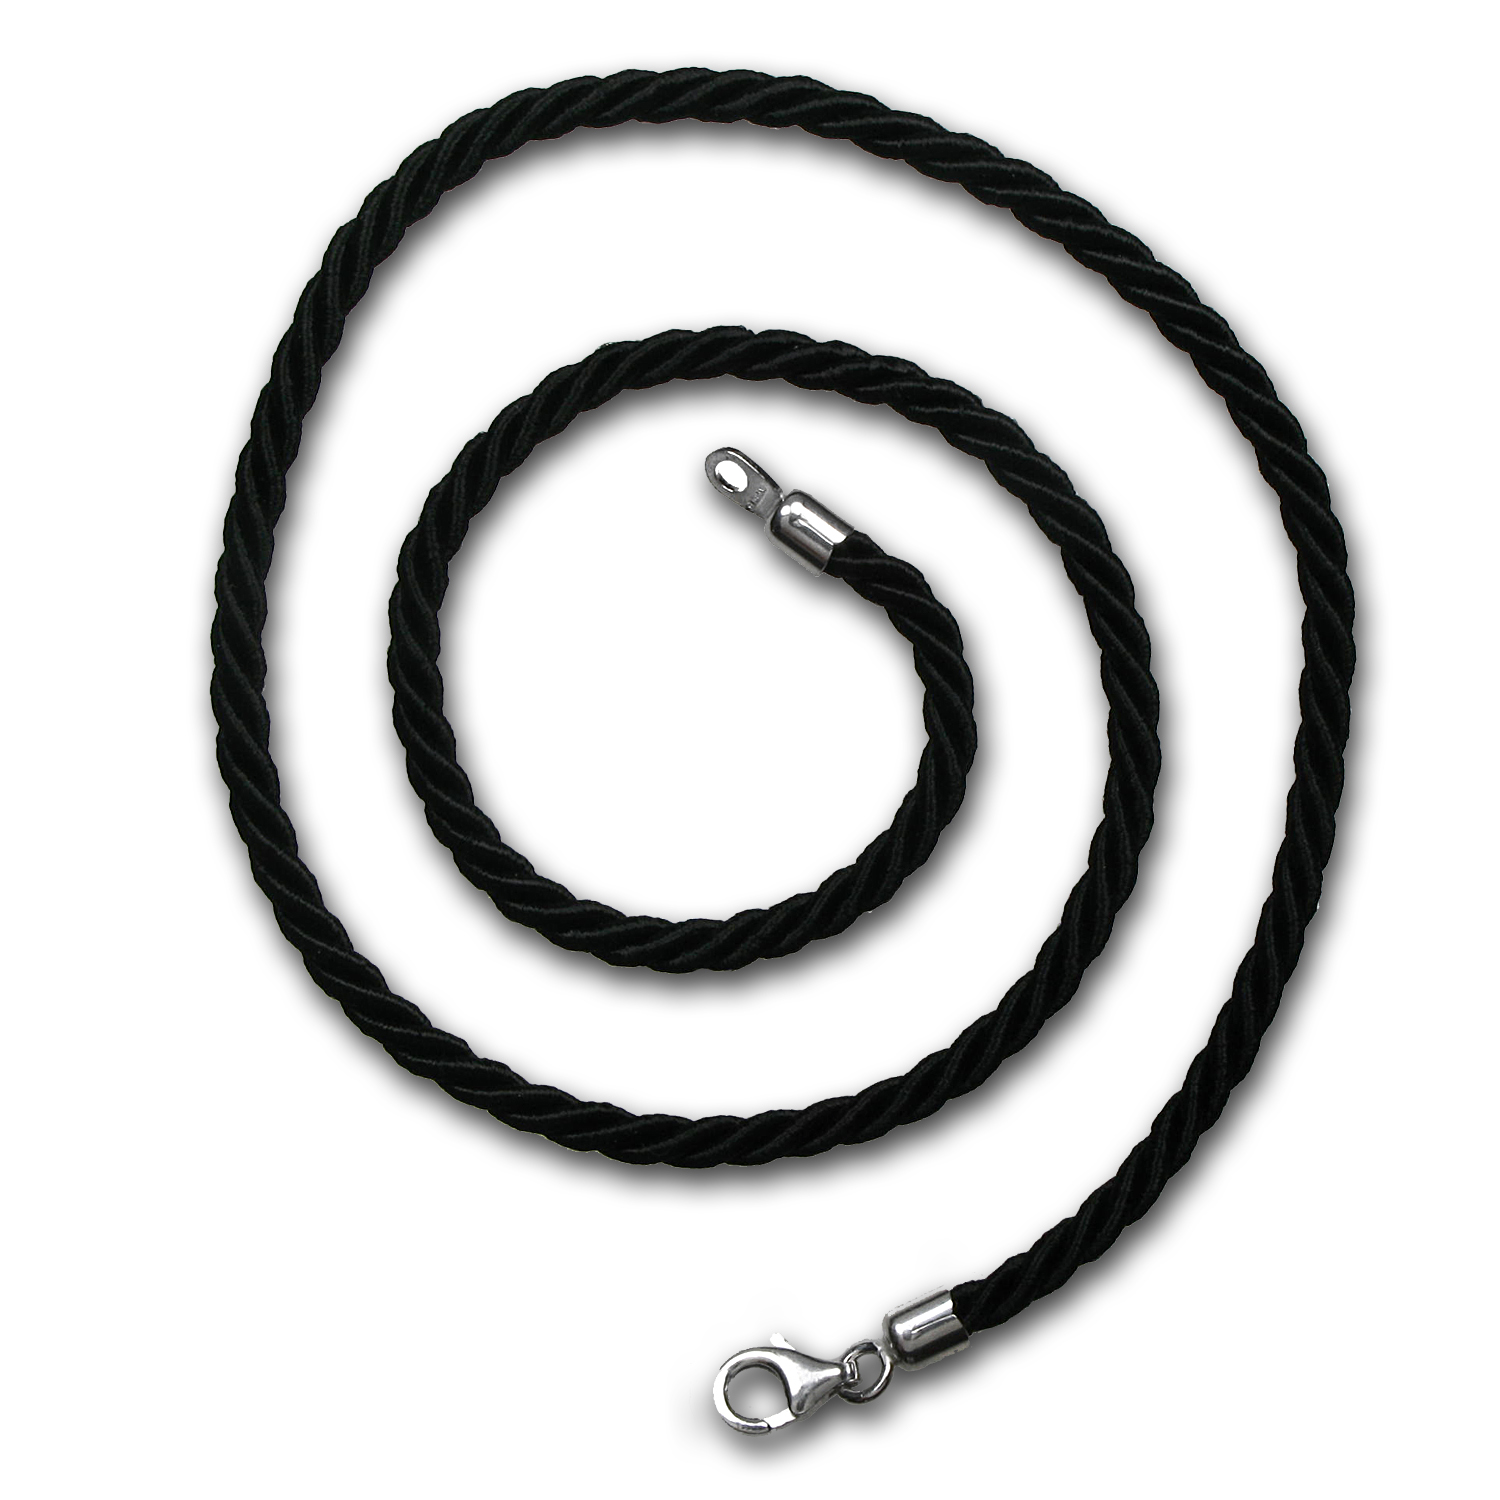 Black Satin Cord Necklace - 18 in.